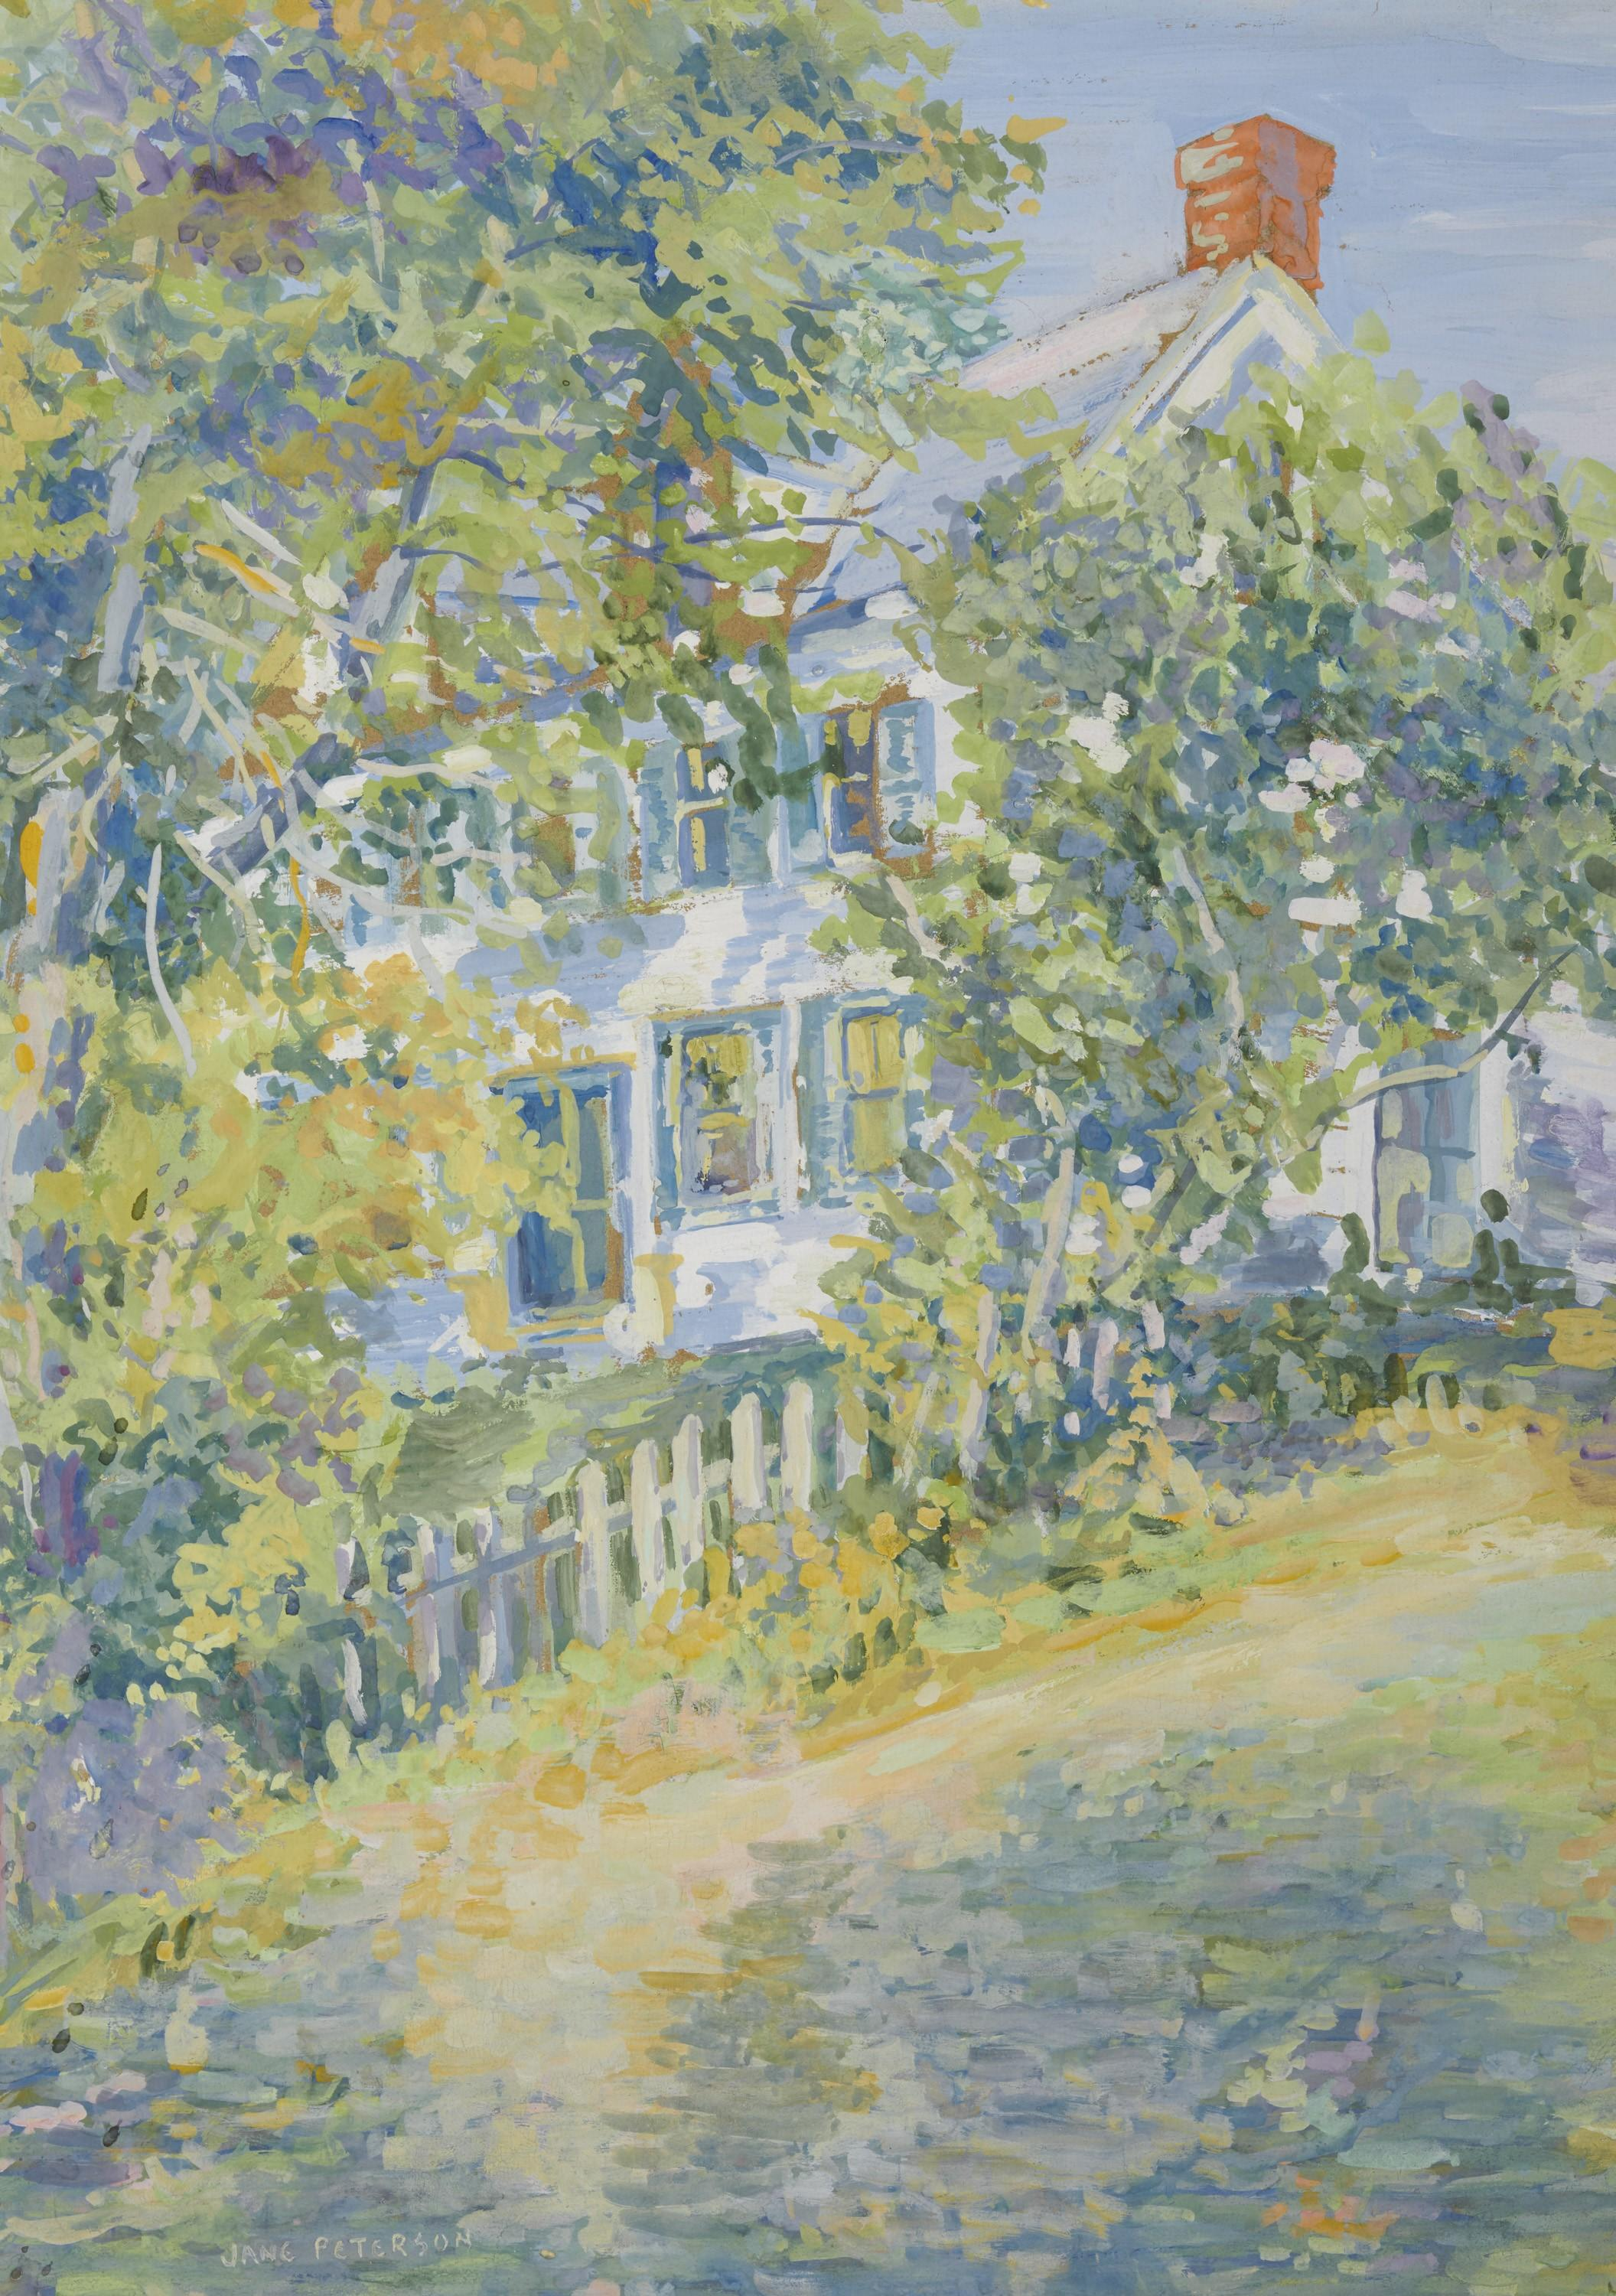 JANE PETERSON, (American, 1876-1965), White House, gouache, sight: 20 3/4 x 14 3/4 in., frame: 32 1/2 x 35 3/4 in.